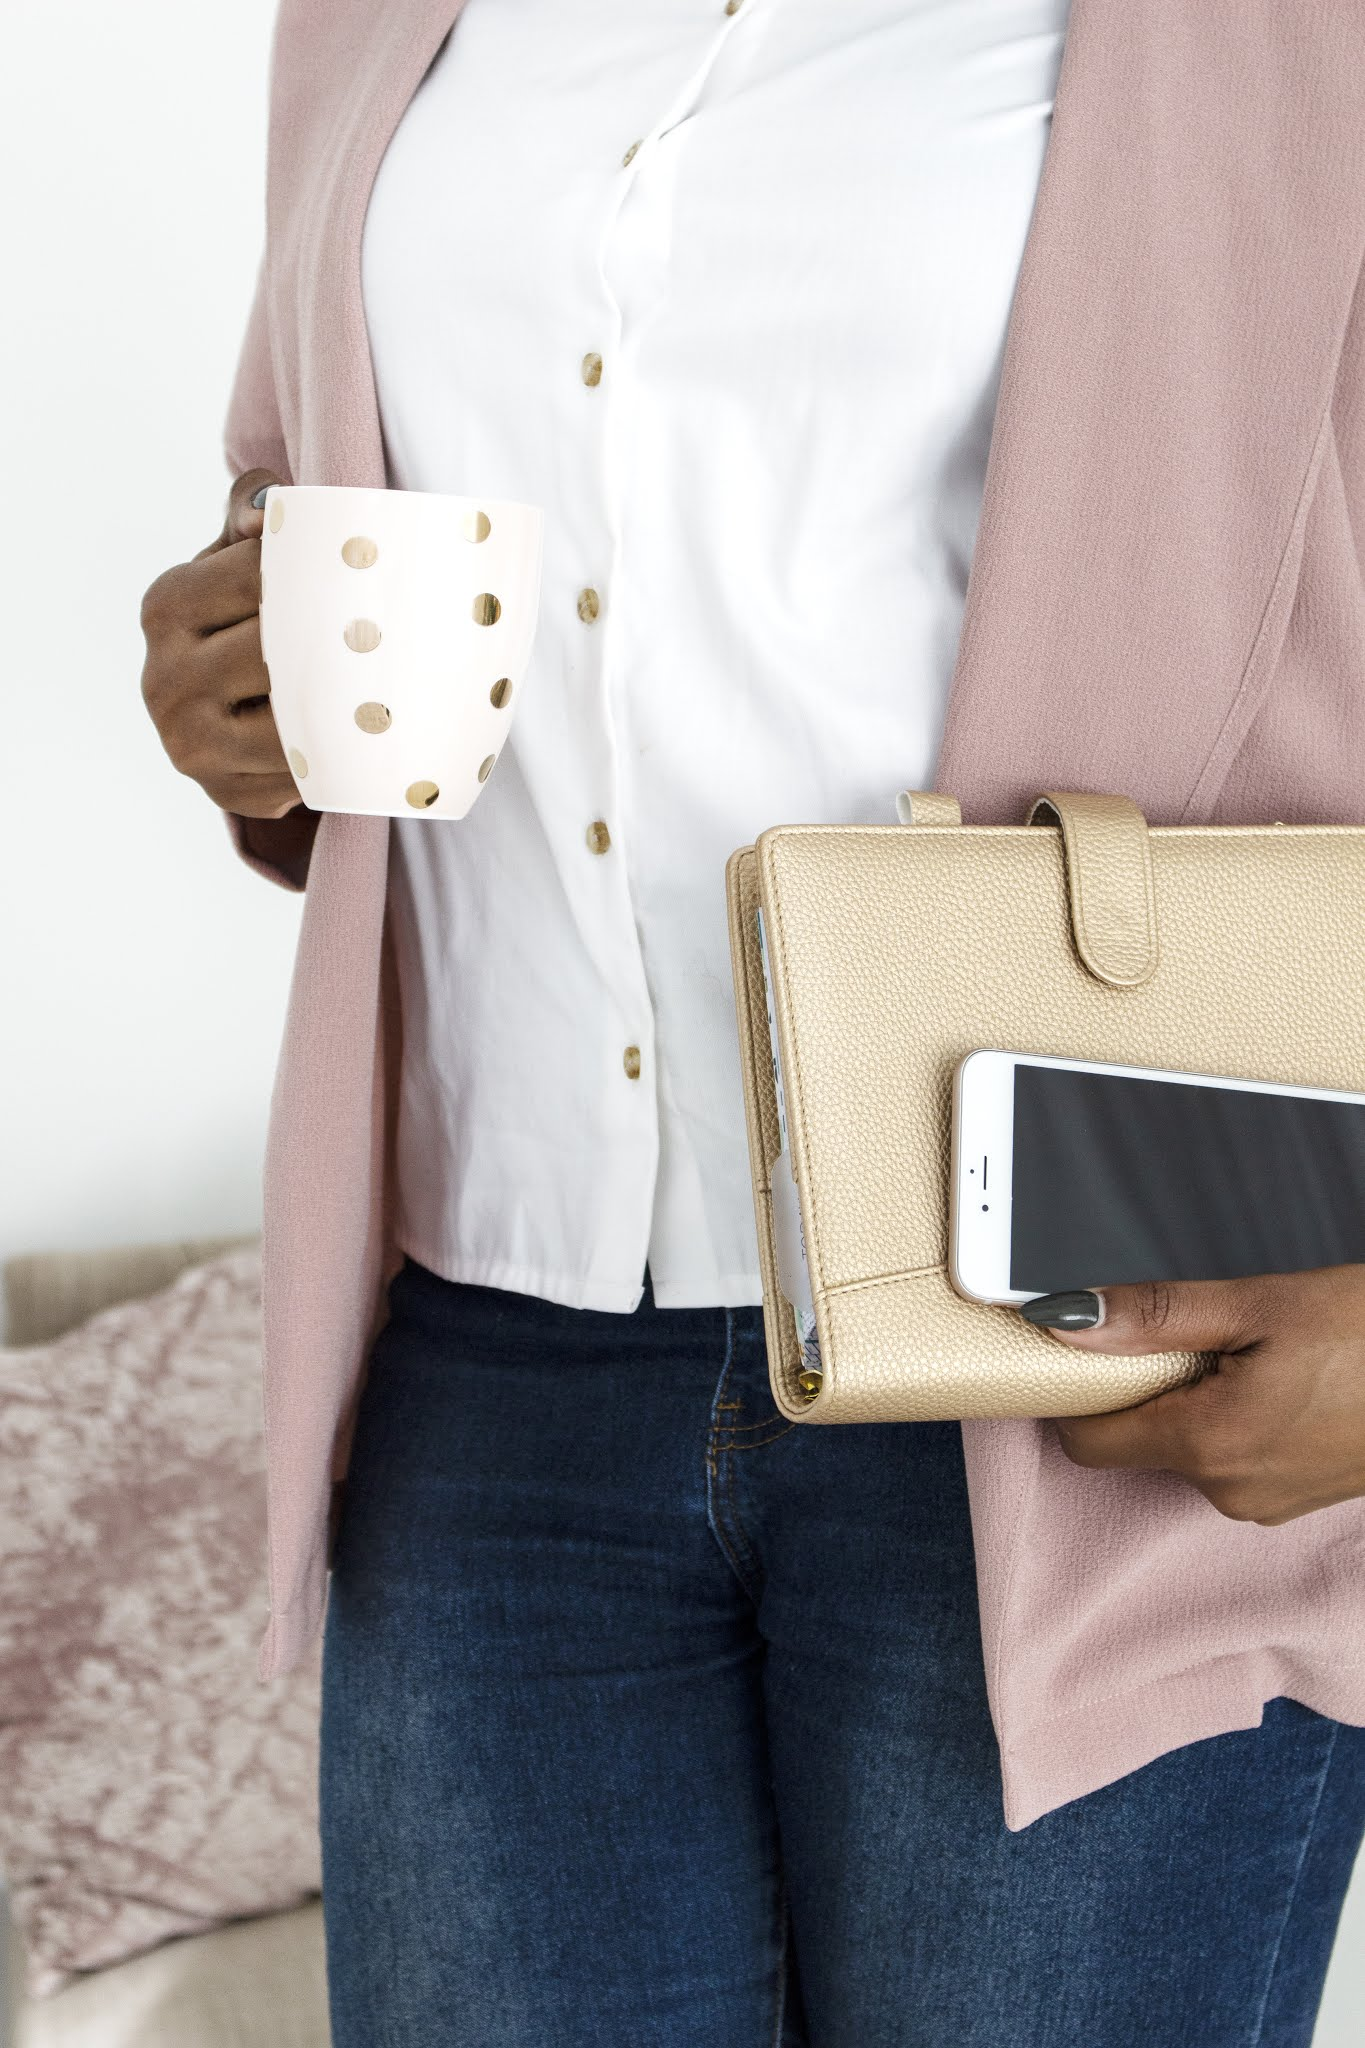 Stock photo from ivorymix of a woman holding a mug